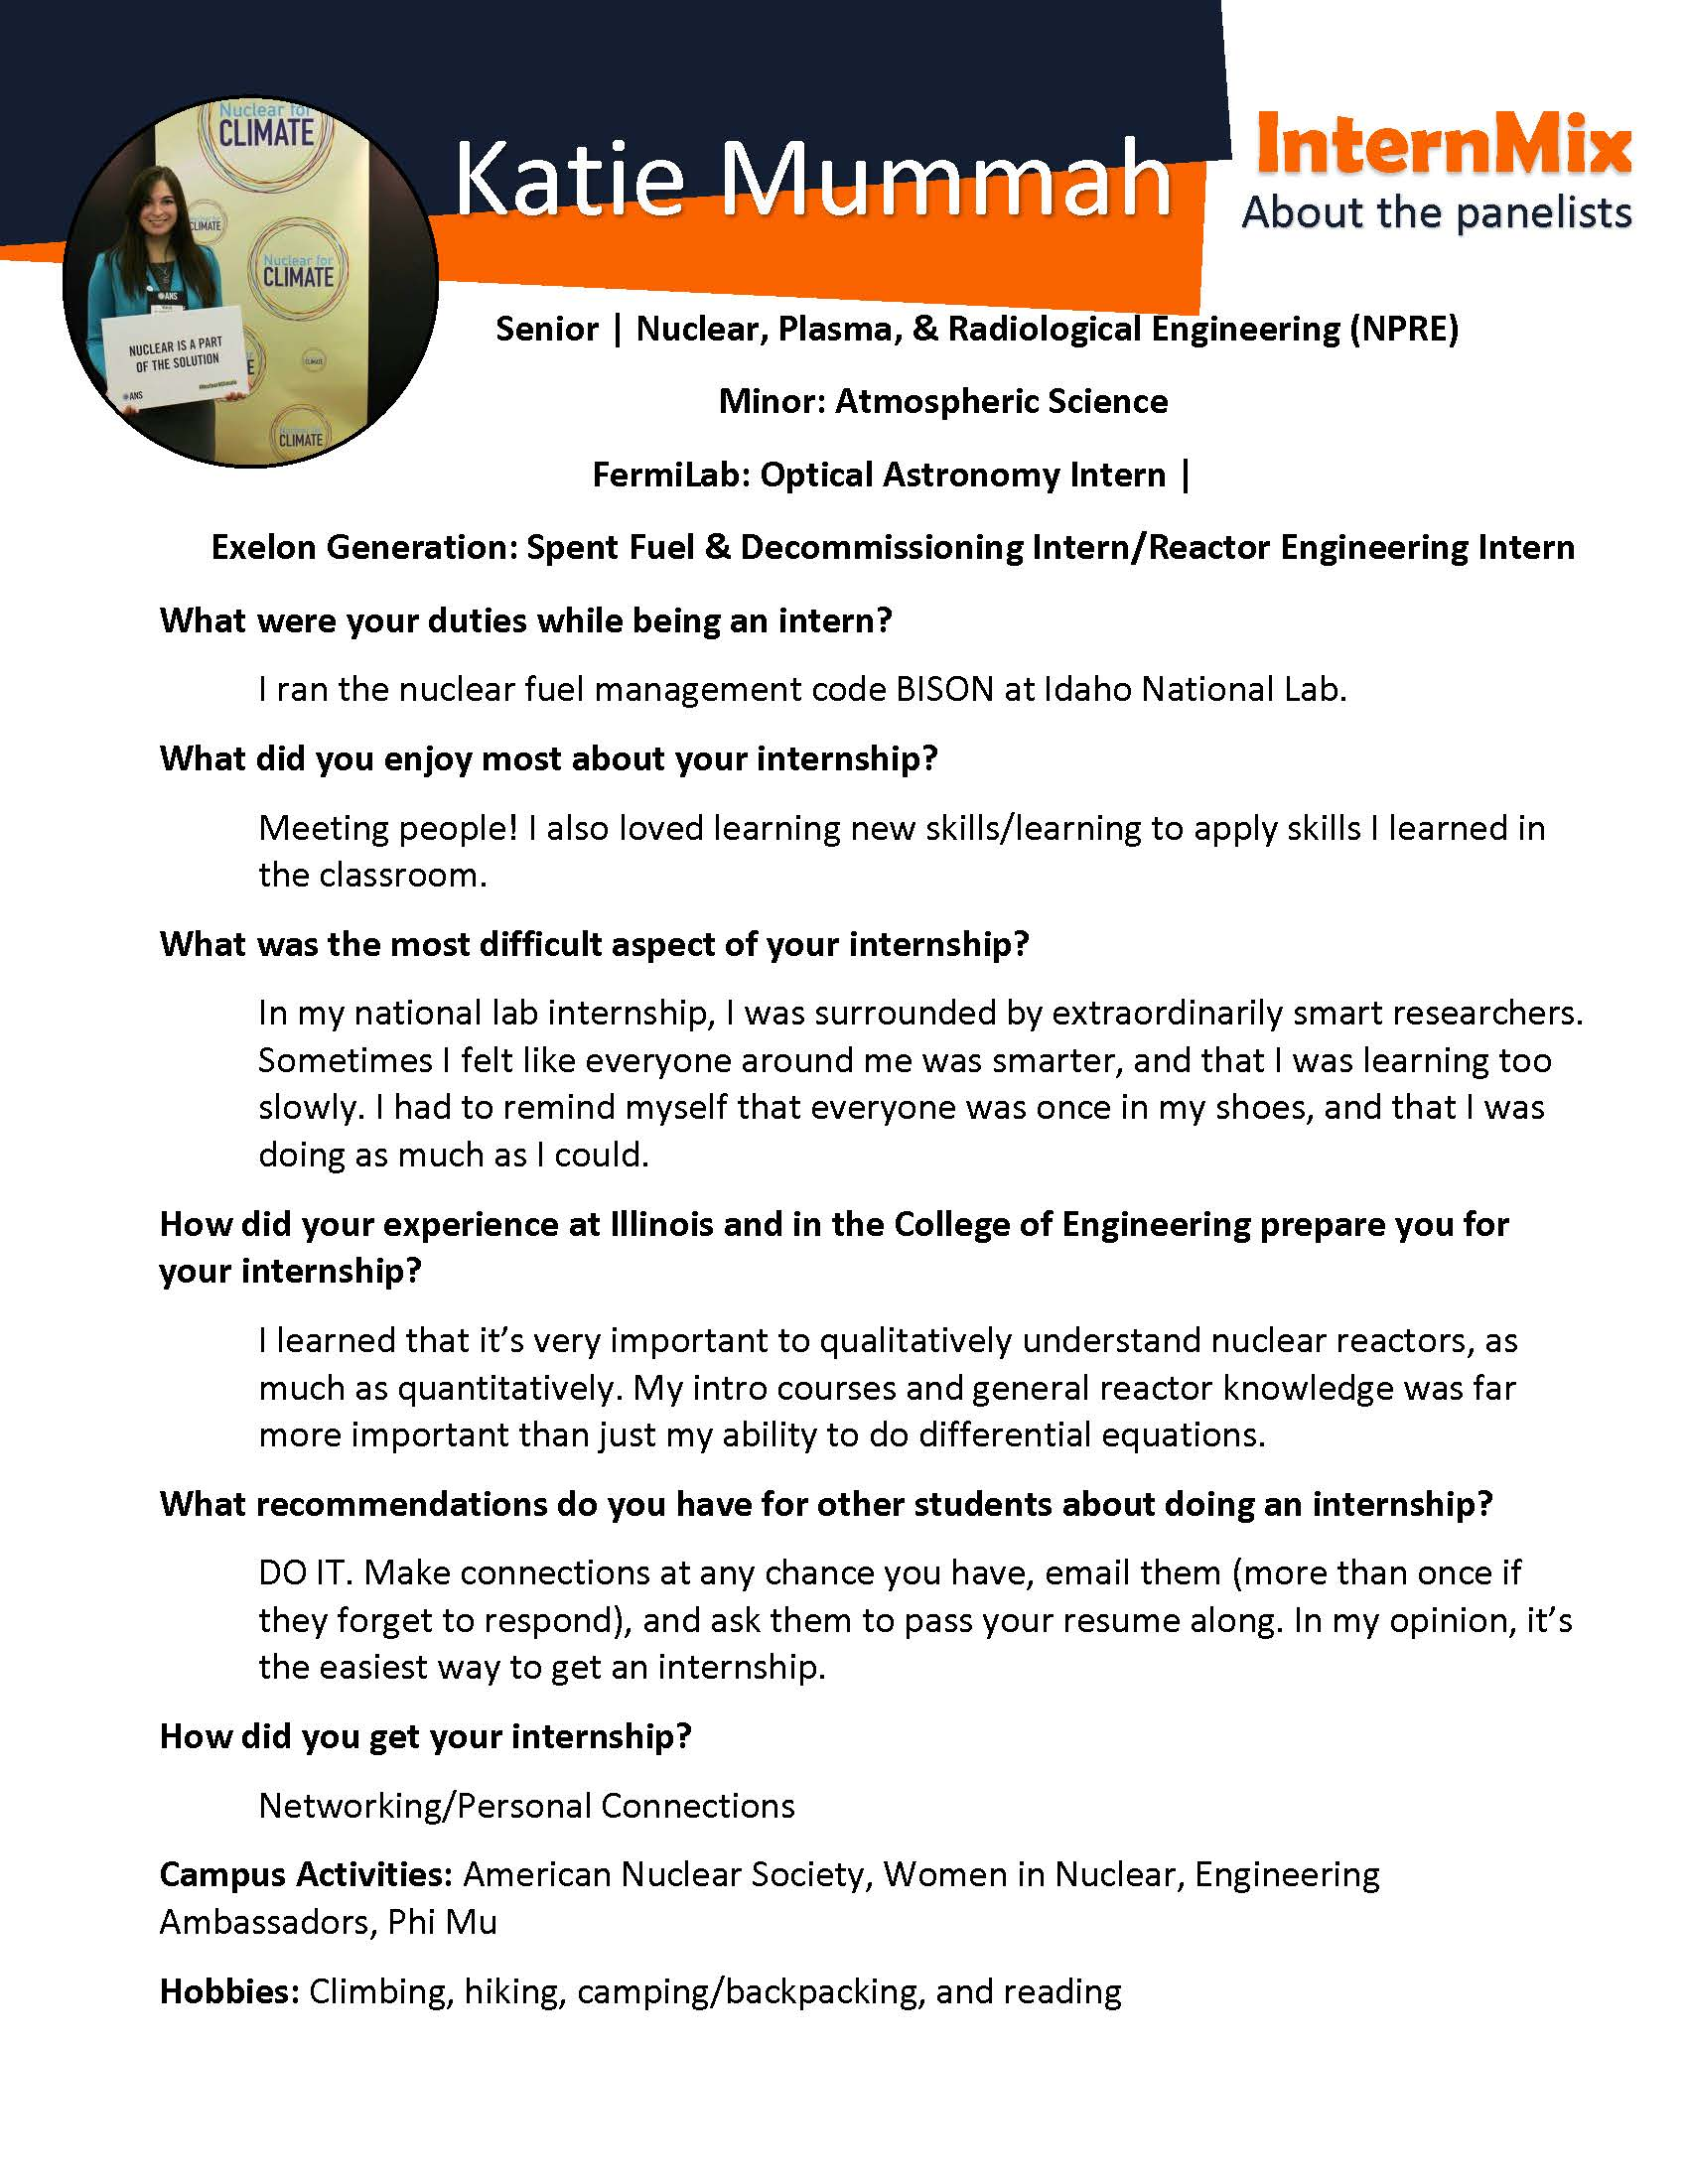 Internships co ops engineering career services click the photo below to learn more about her experience as an optical astronomy intern for fermilab and as a spent fuel decommissioning internreactor madrichimfo Choice Image